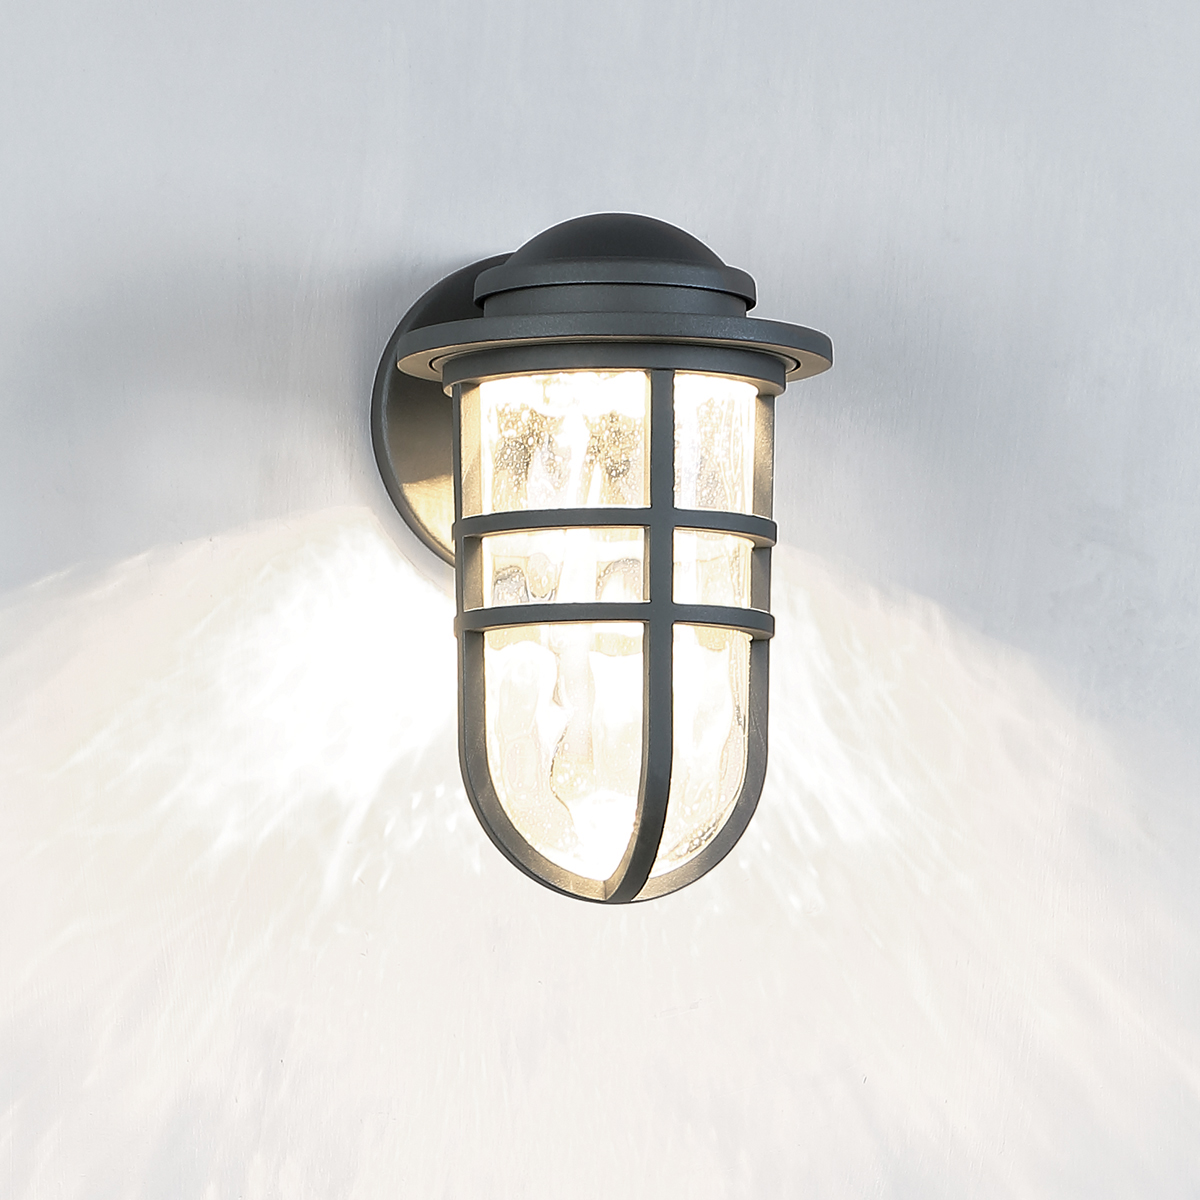 WAC Lighting WS W Steampunk 9 Inch LED Outdoor Wall